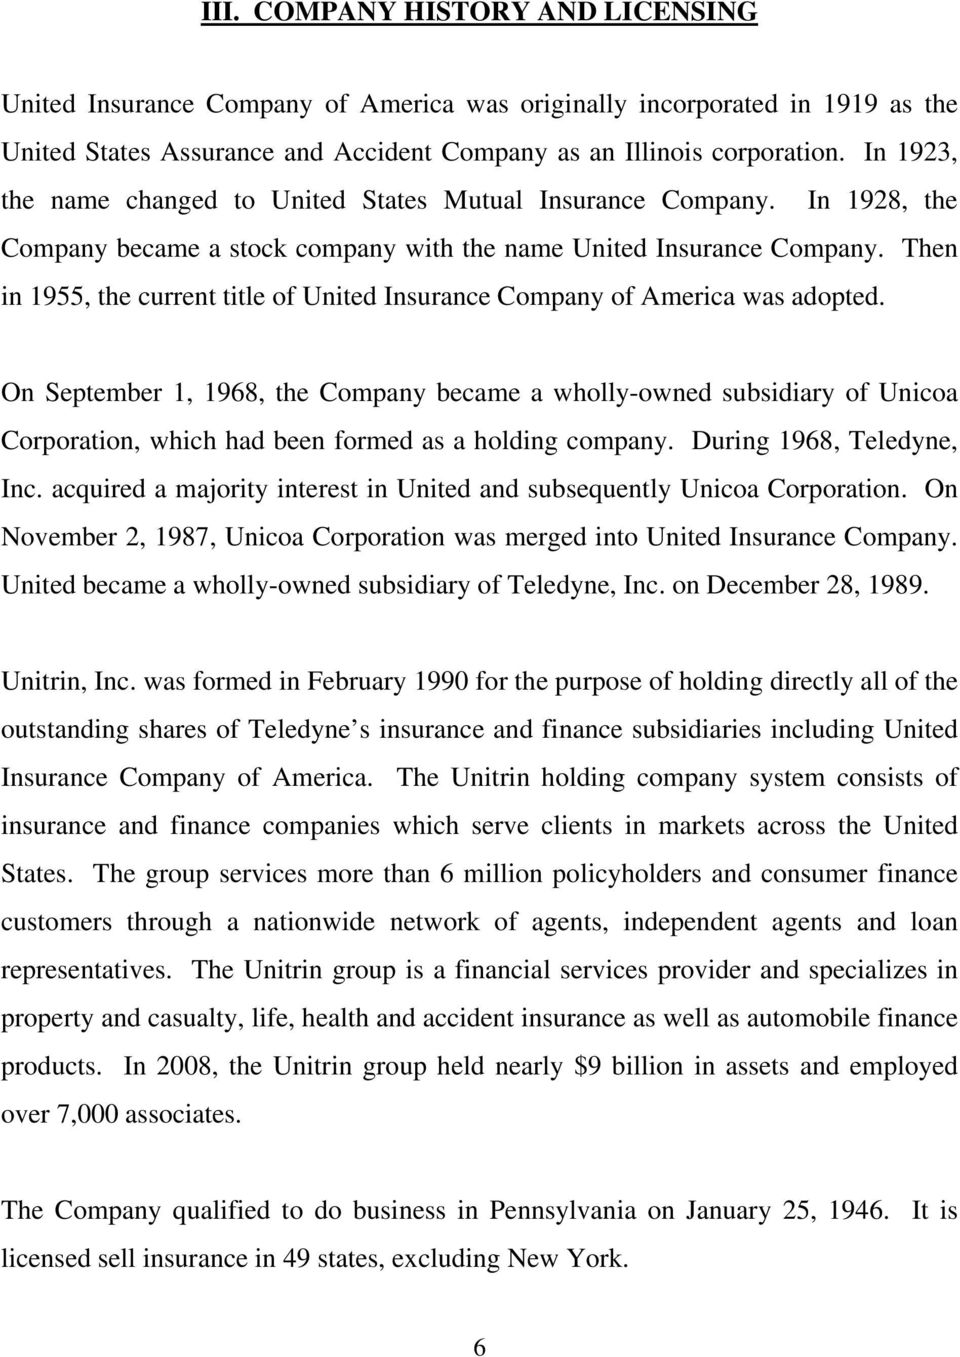 Then in 1955, the current title of United Insurance Company of America was adopted.